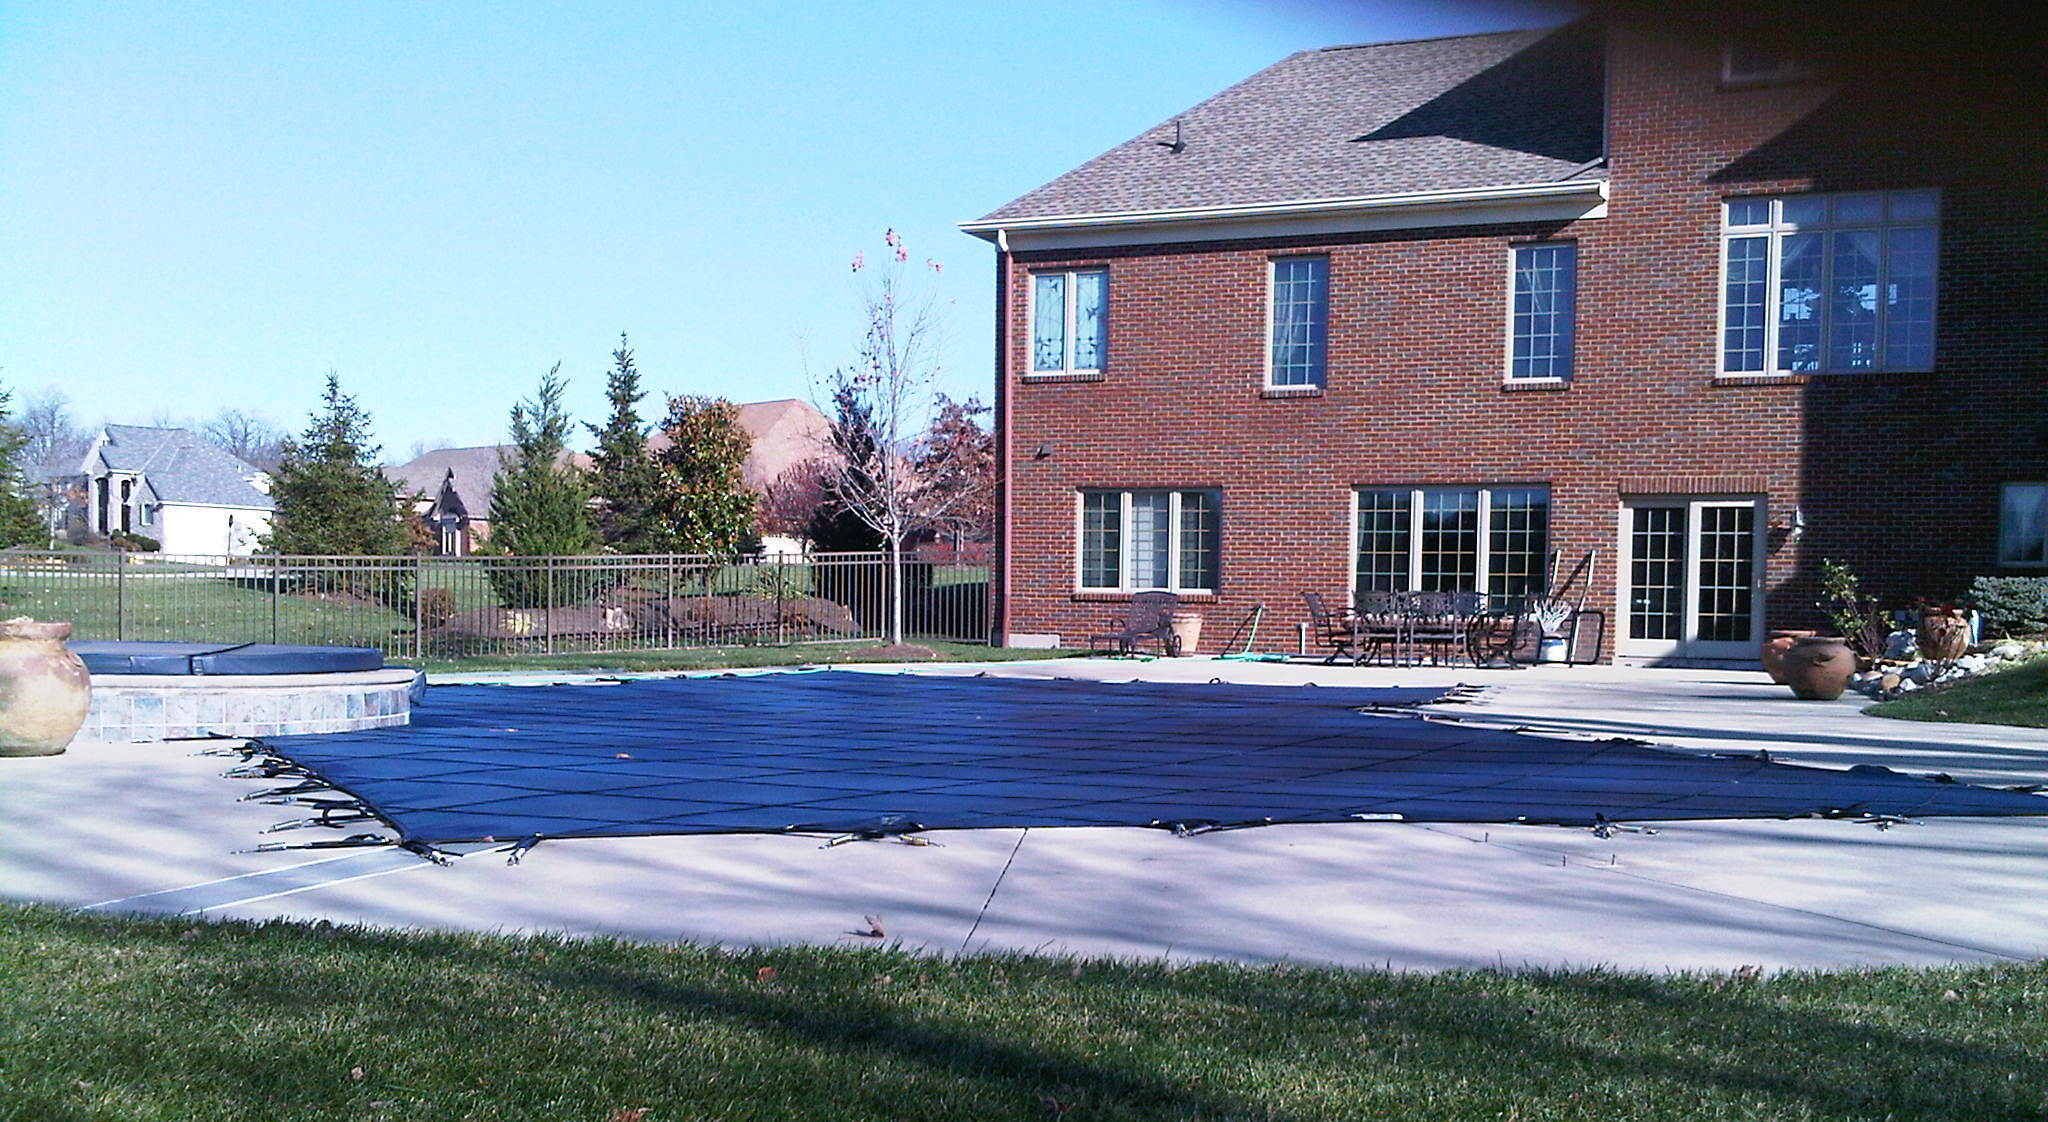 Pool cleaning by speedy swimming pool service in Fort Thomas, KY